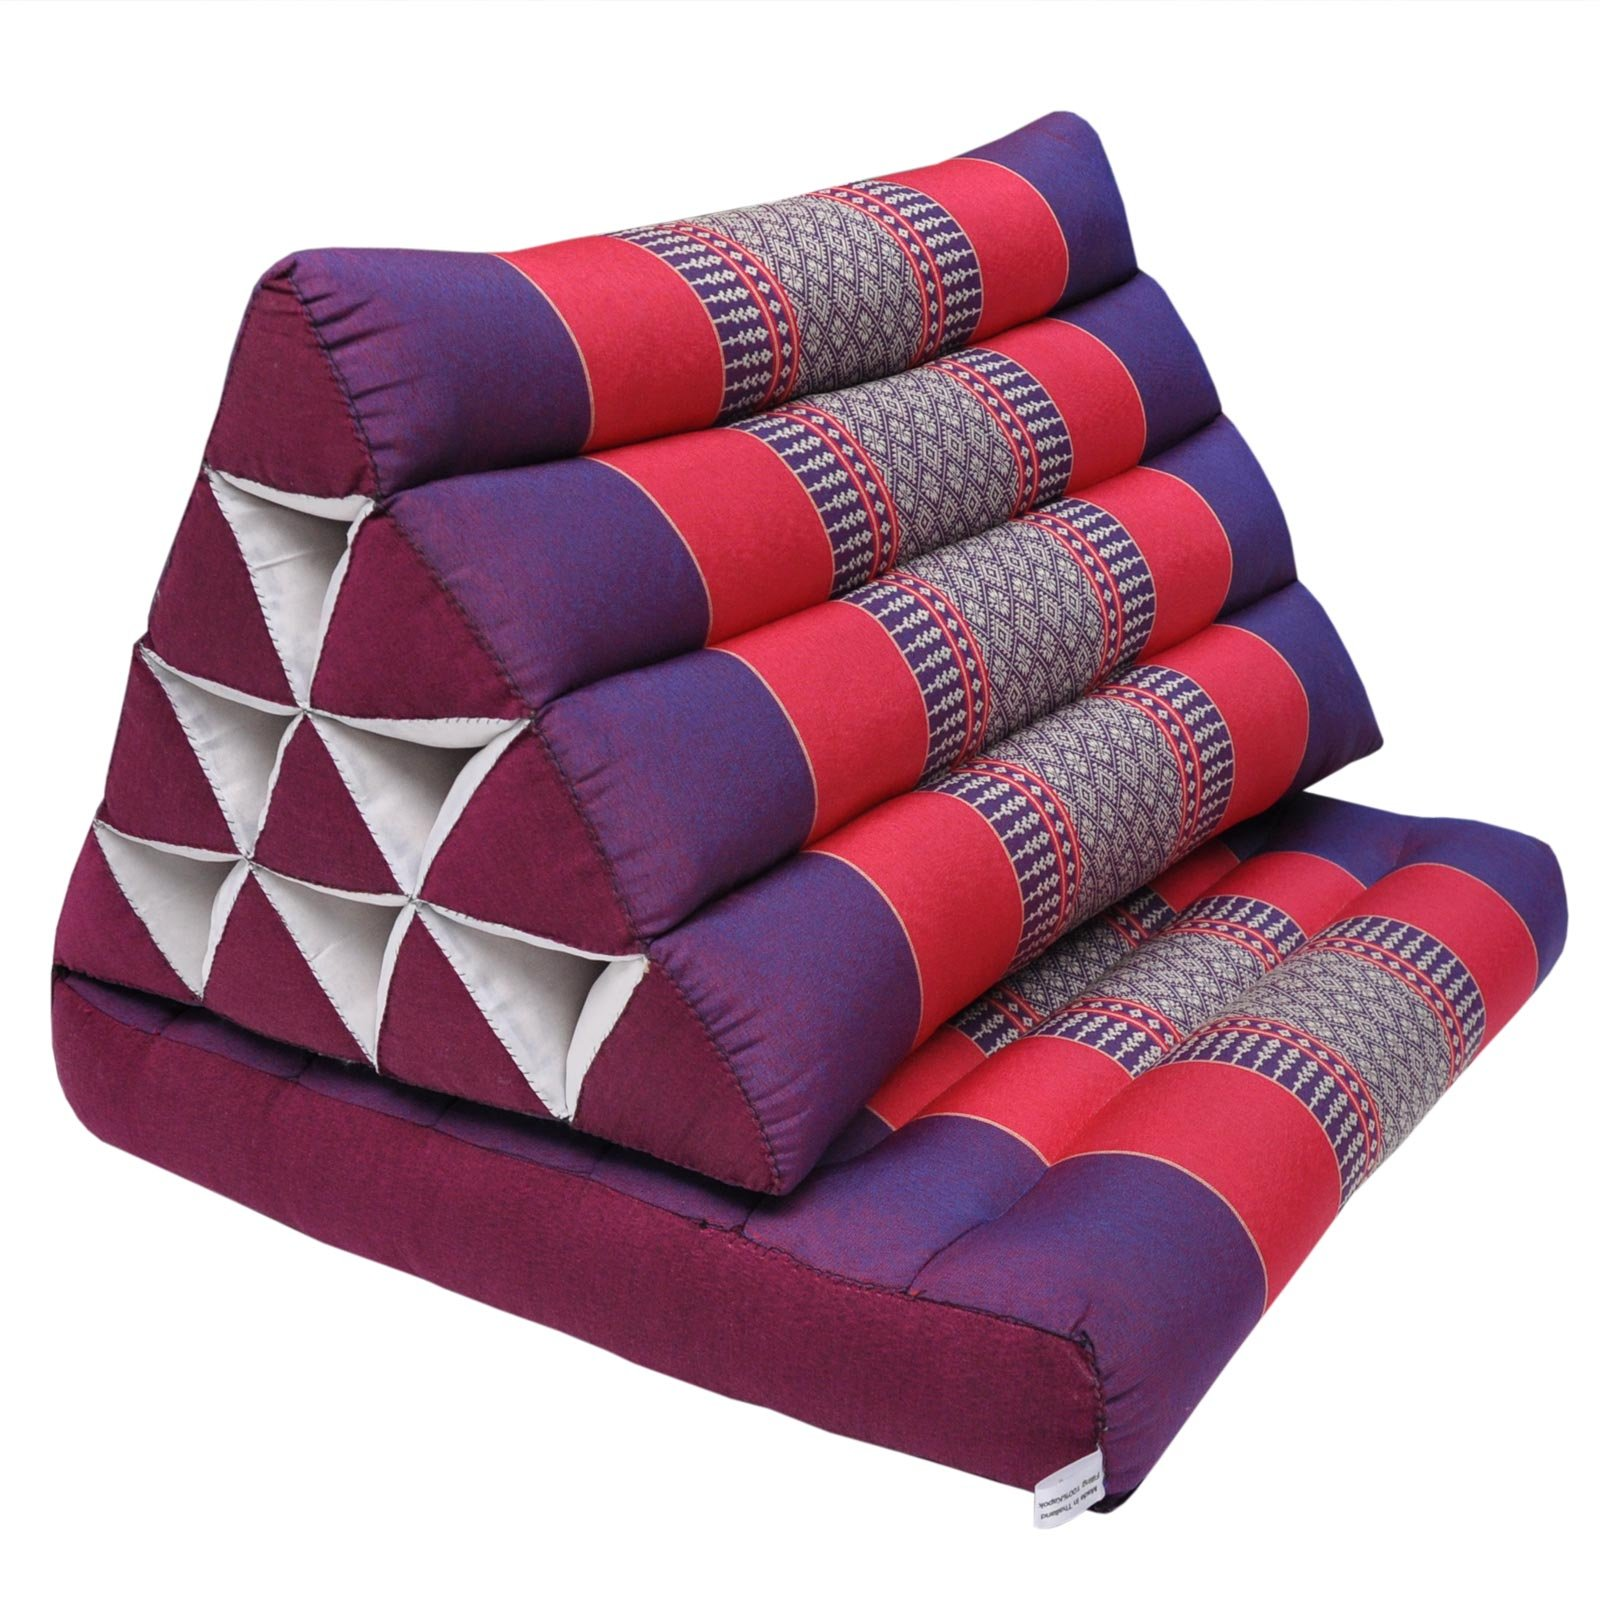 Thai triangle cushion with 1 folding seat, relaxation, beach, pool, meditation, yoga Violet/Red (81501) by Wilai GmbH